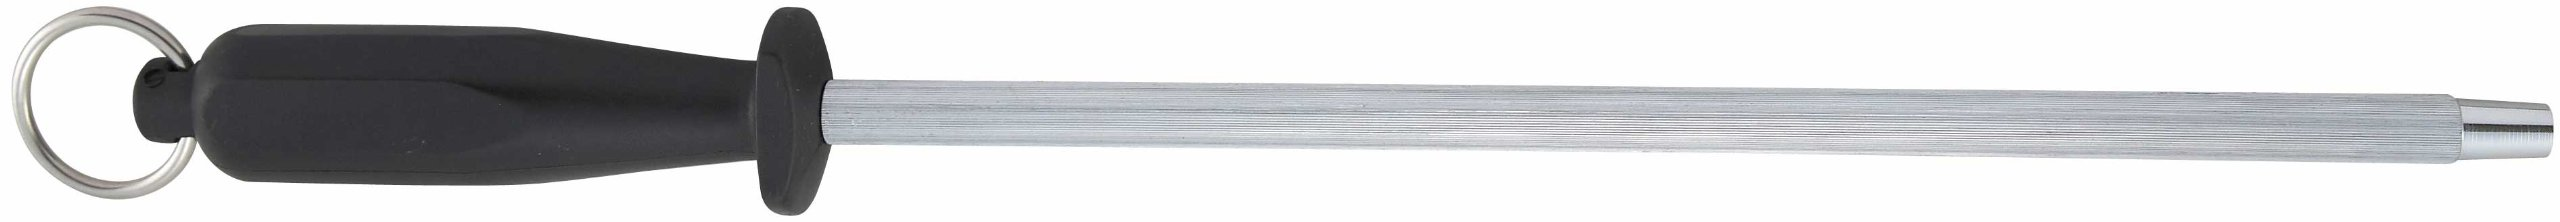 Winware Stainless Steel Sharpening Steel, 12-Inch by Winware by Winco